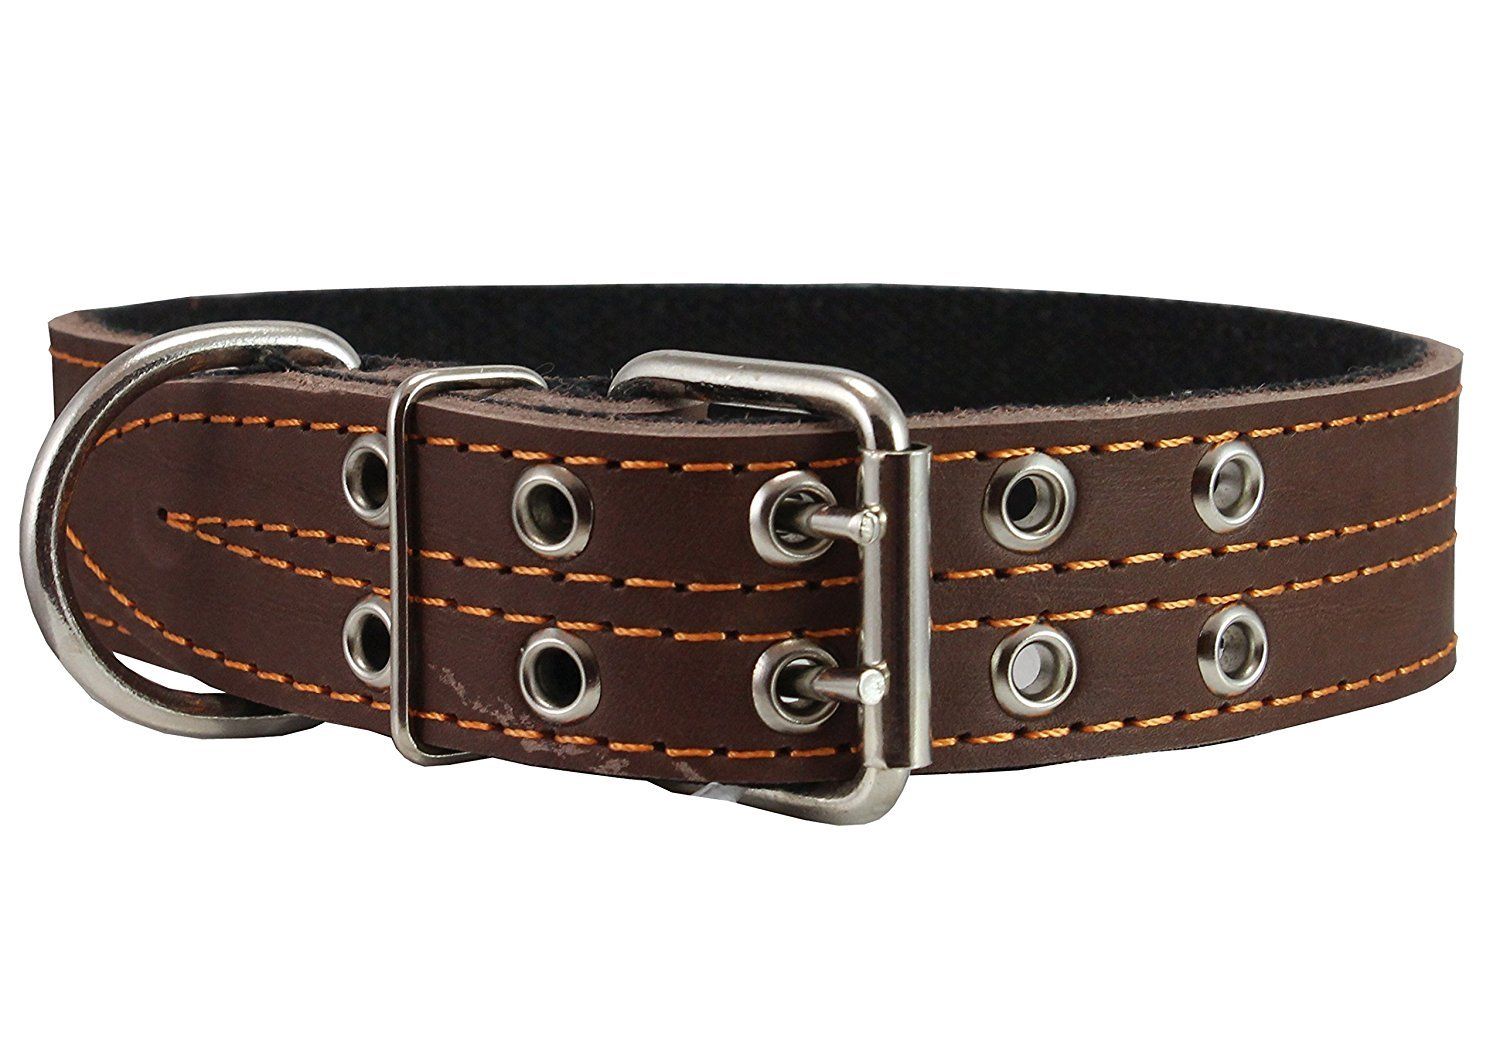 Genuine Leather Dog Collar Padded Brown 1.5 Wide. Fits 18-22 Neck Size Cane Corso redtweiler